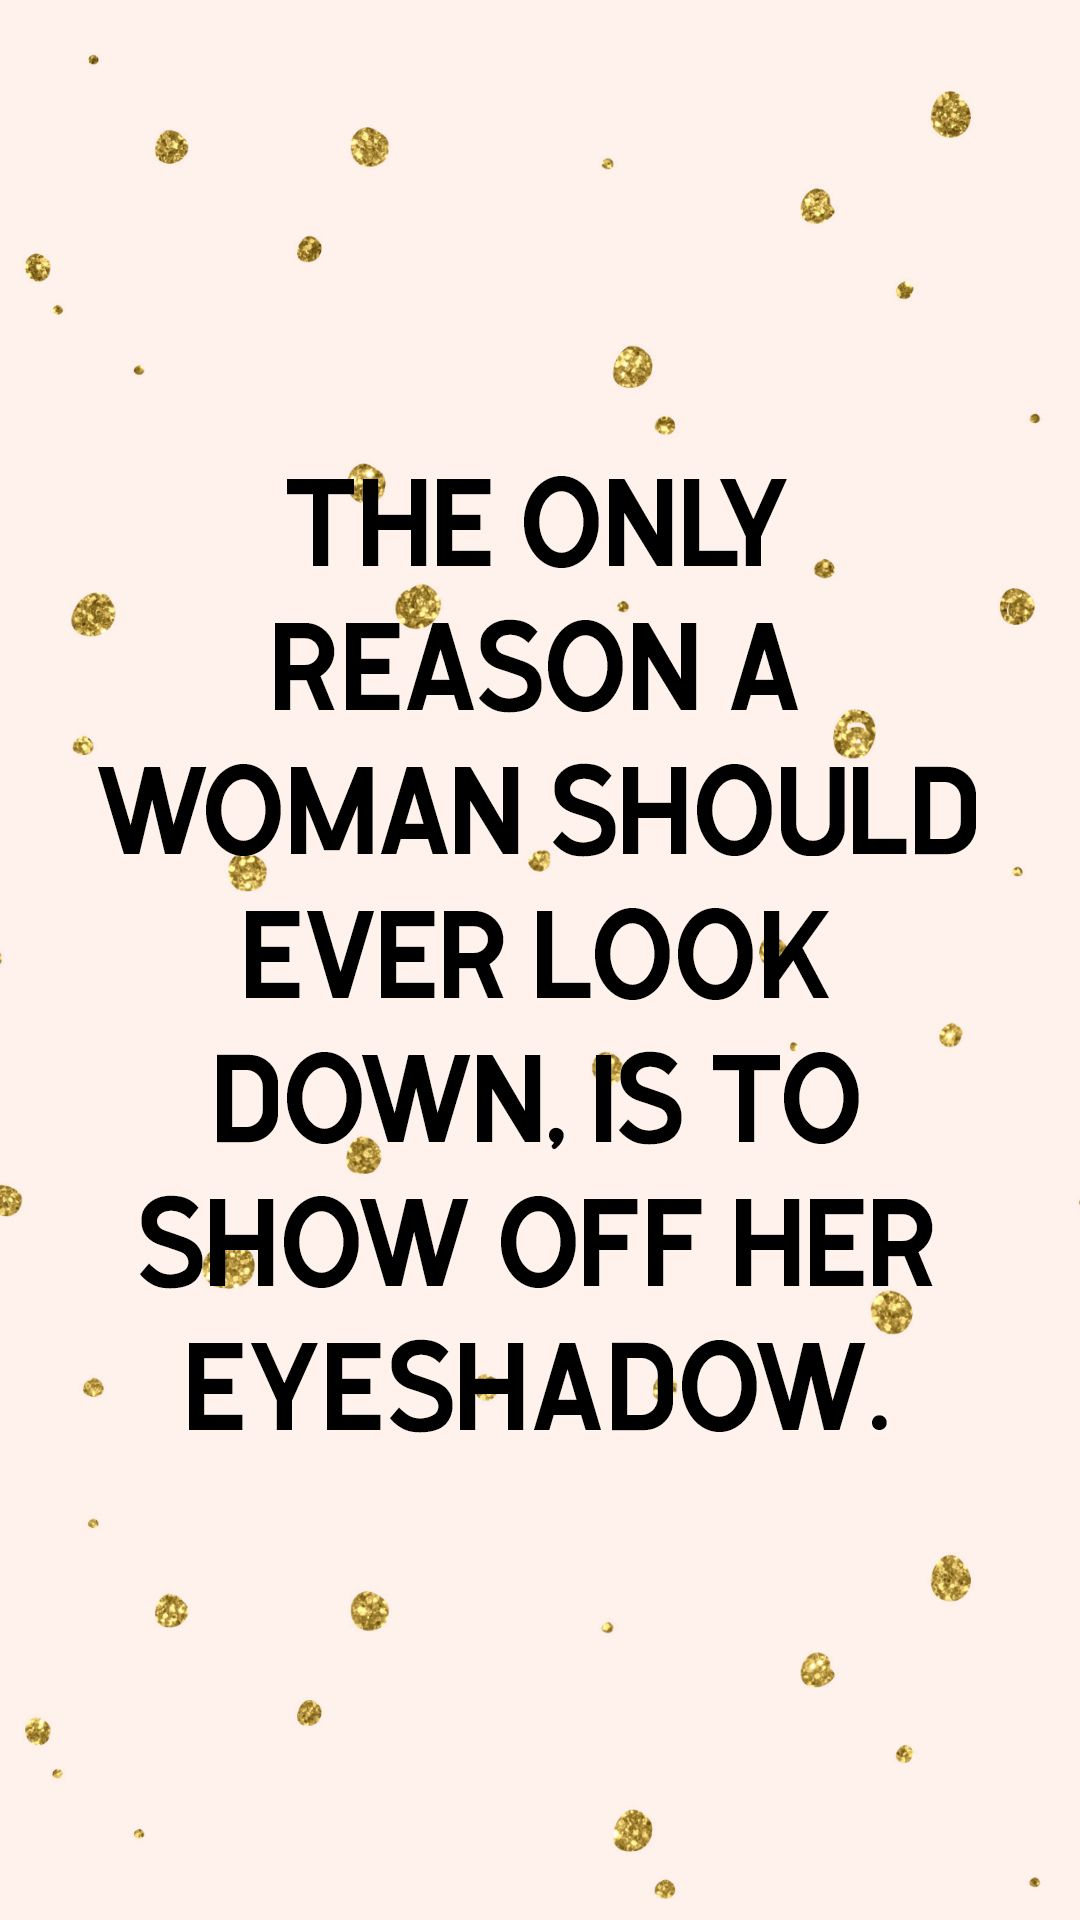 Beauty and Self Love Quotes | Funny Makeup, Self Love Quotes